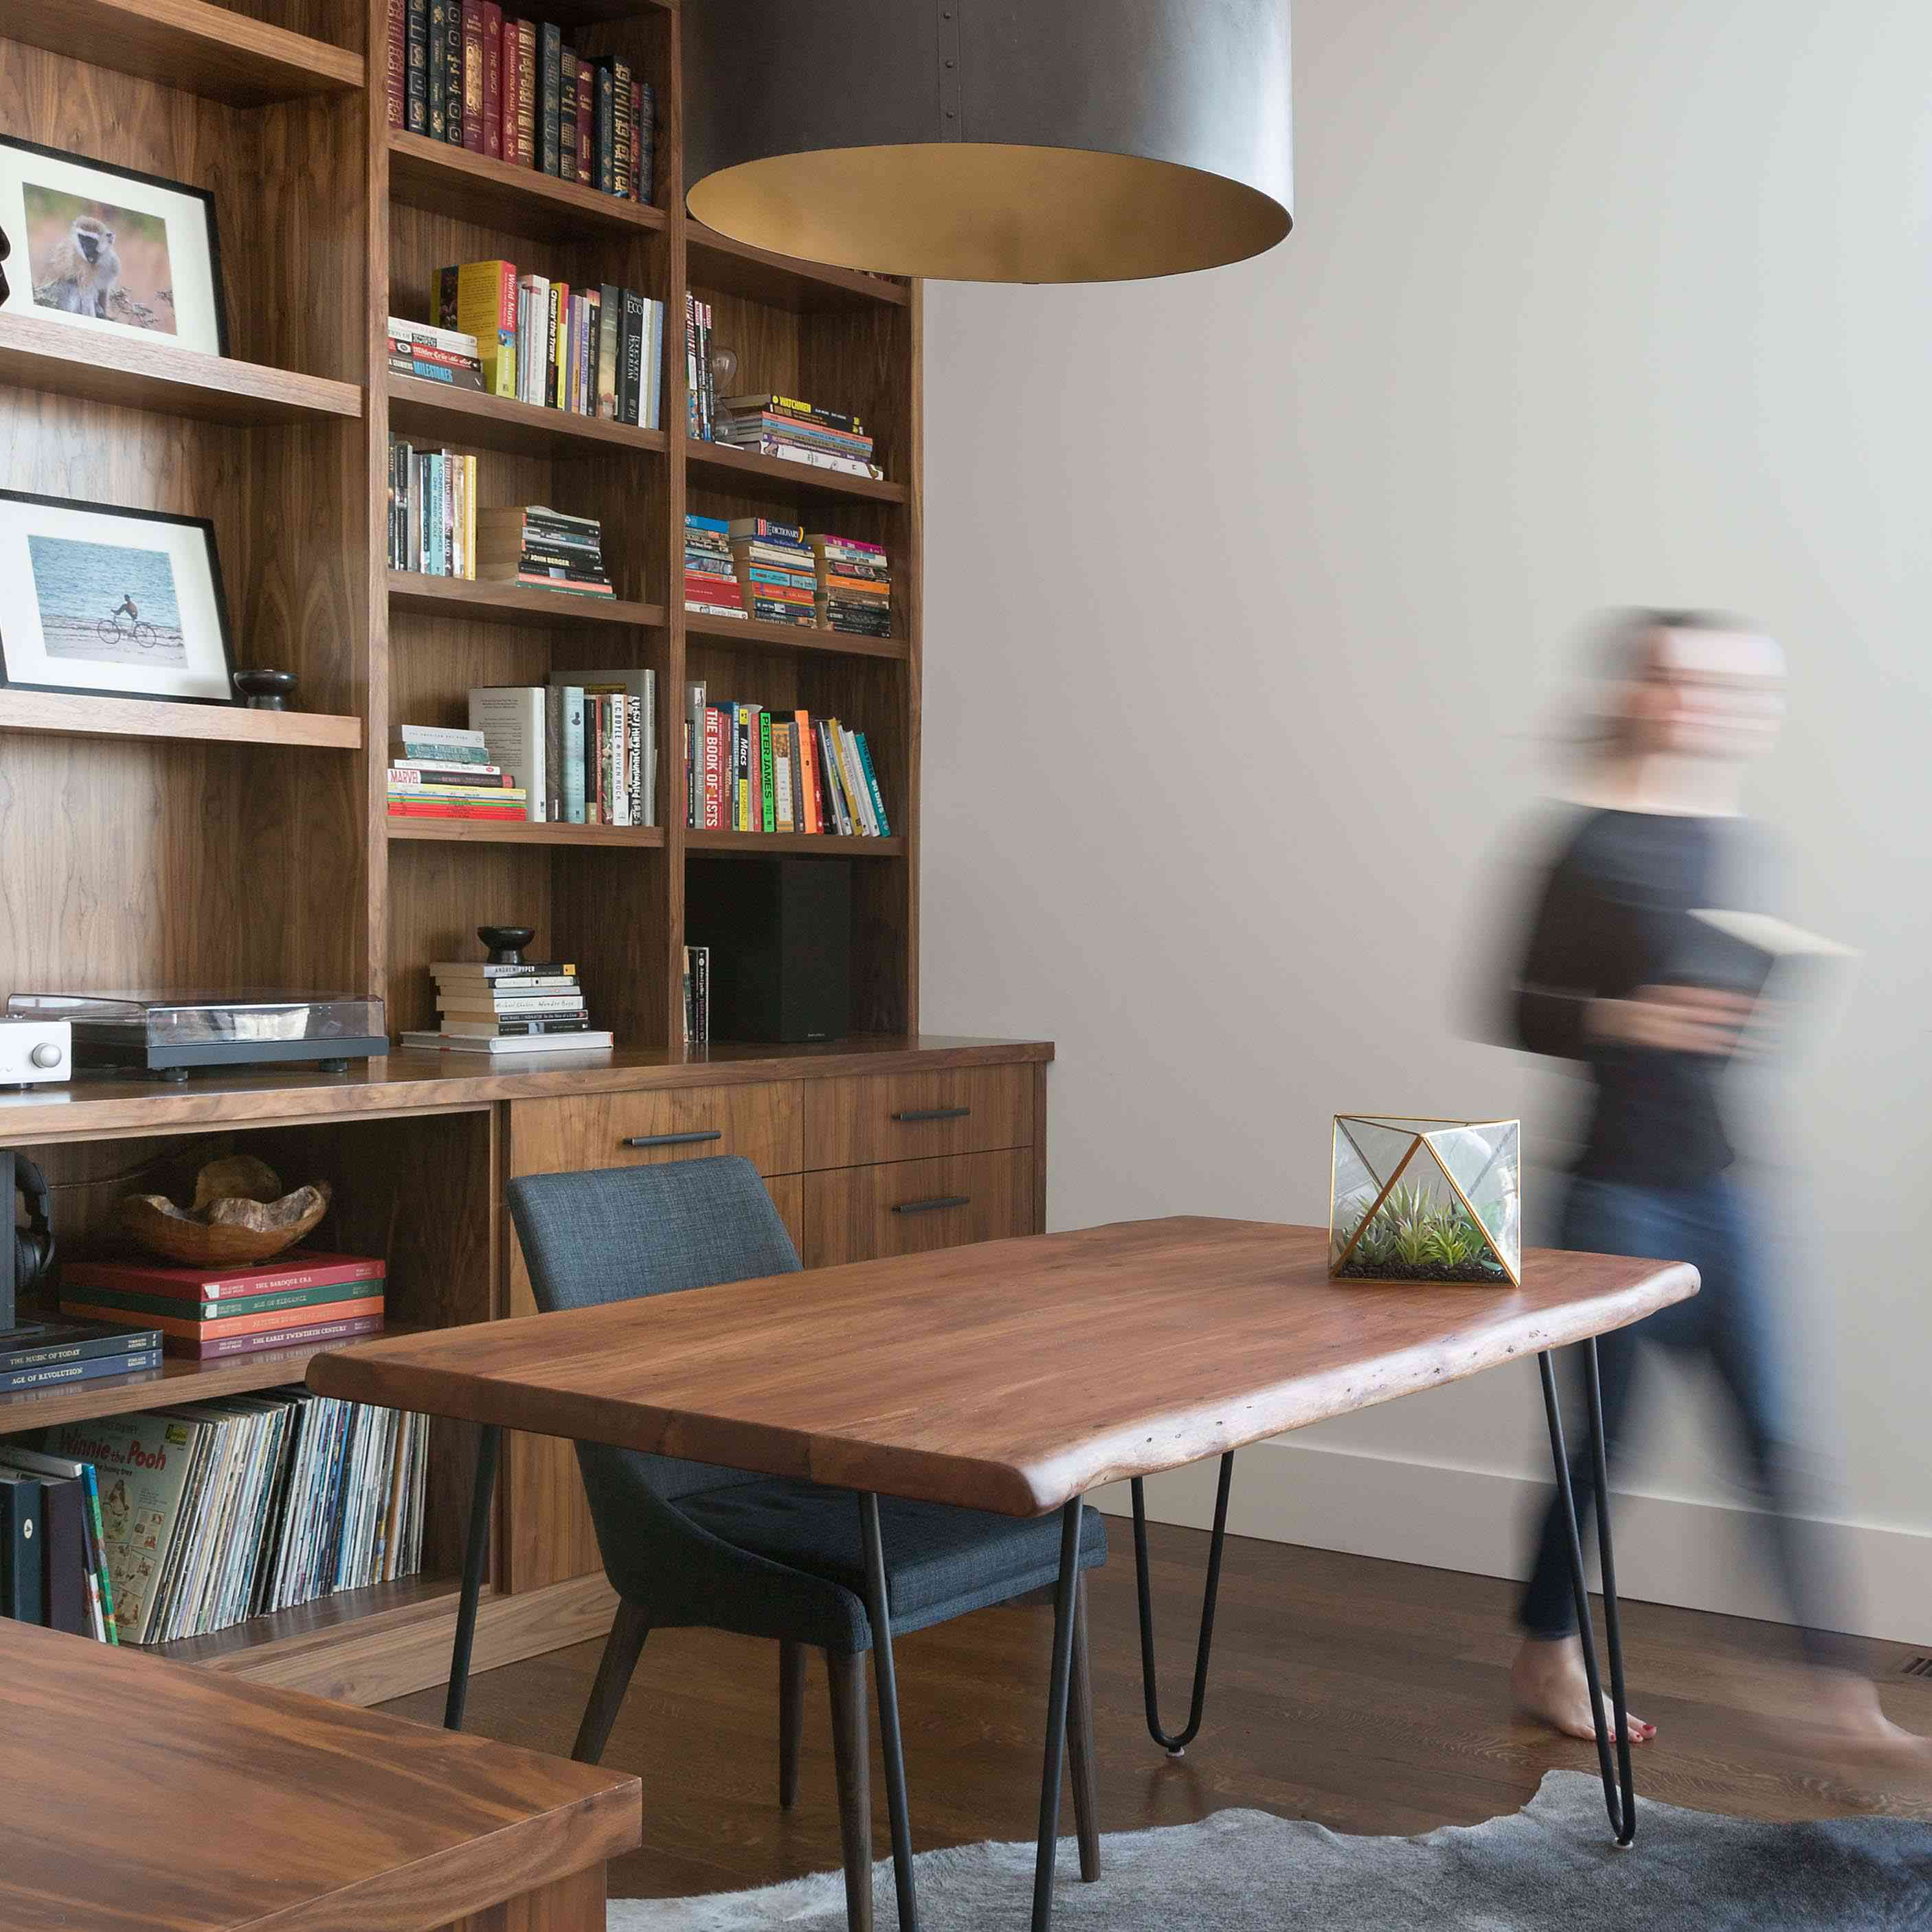 Stately office and bookshelf space.